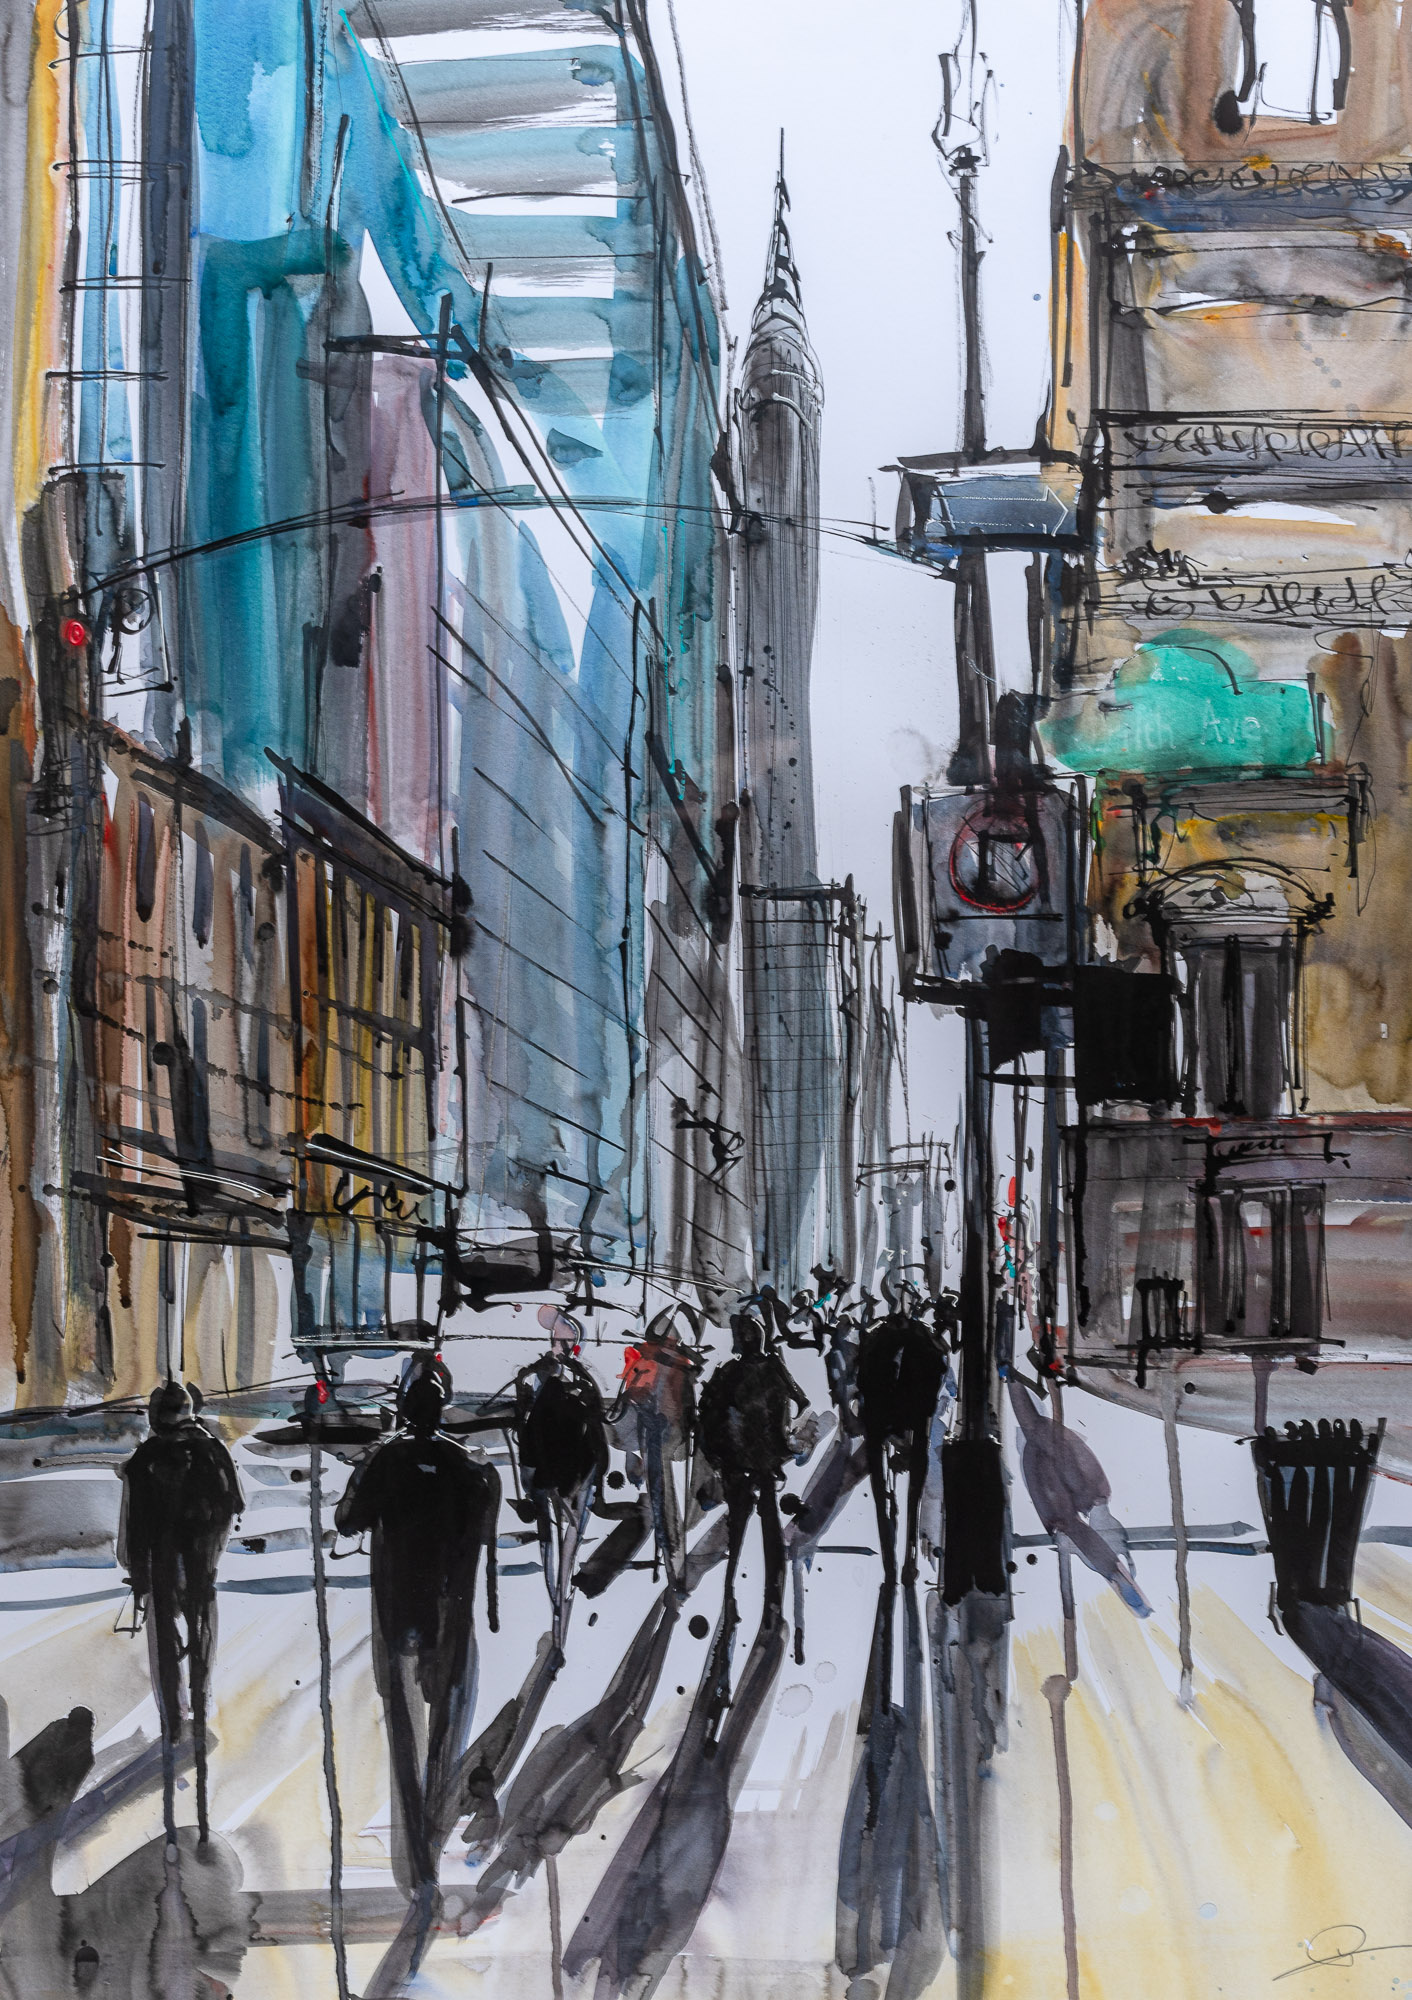 Walking in the Shadows of the Sidewalk - Original Chrysler New York Art Painting by UK Contemporary Artist Paul Kenton, from the Watercolour Collection